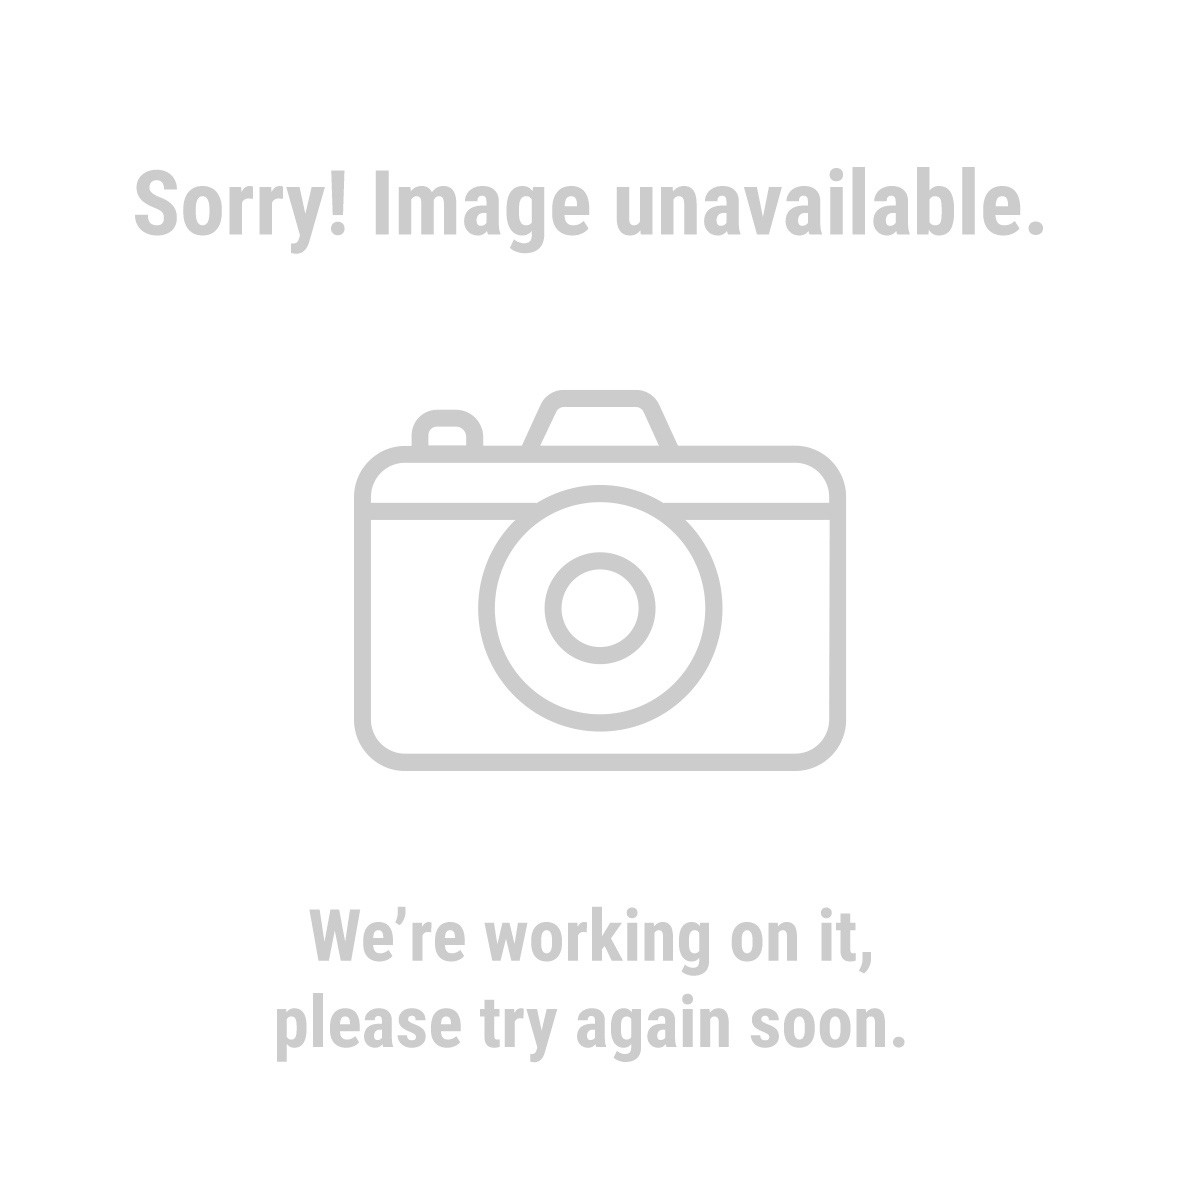 Central-Machinery 44991 Two-Speed Variable Bench Mill/Drill Machine